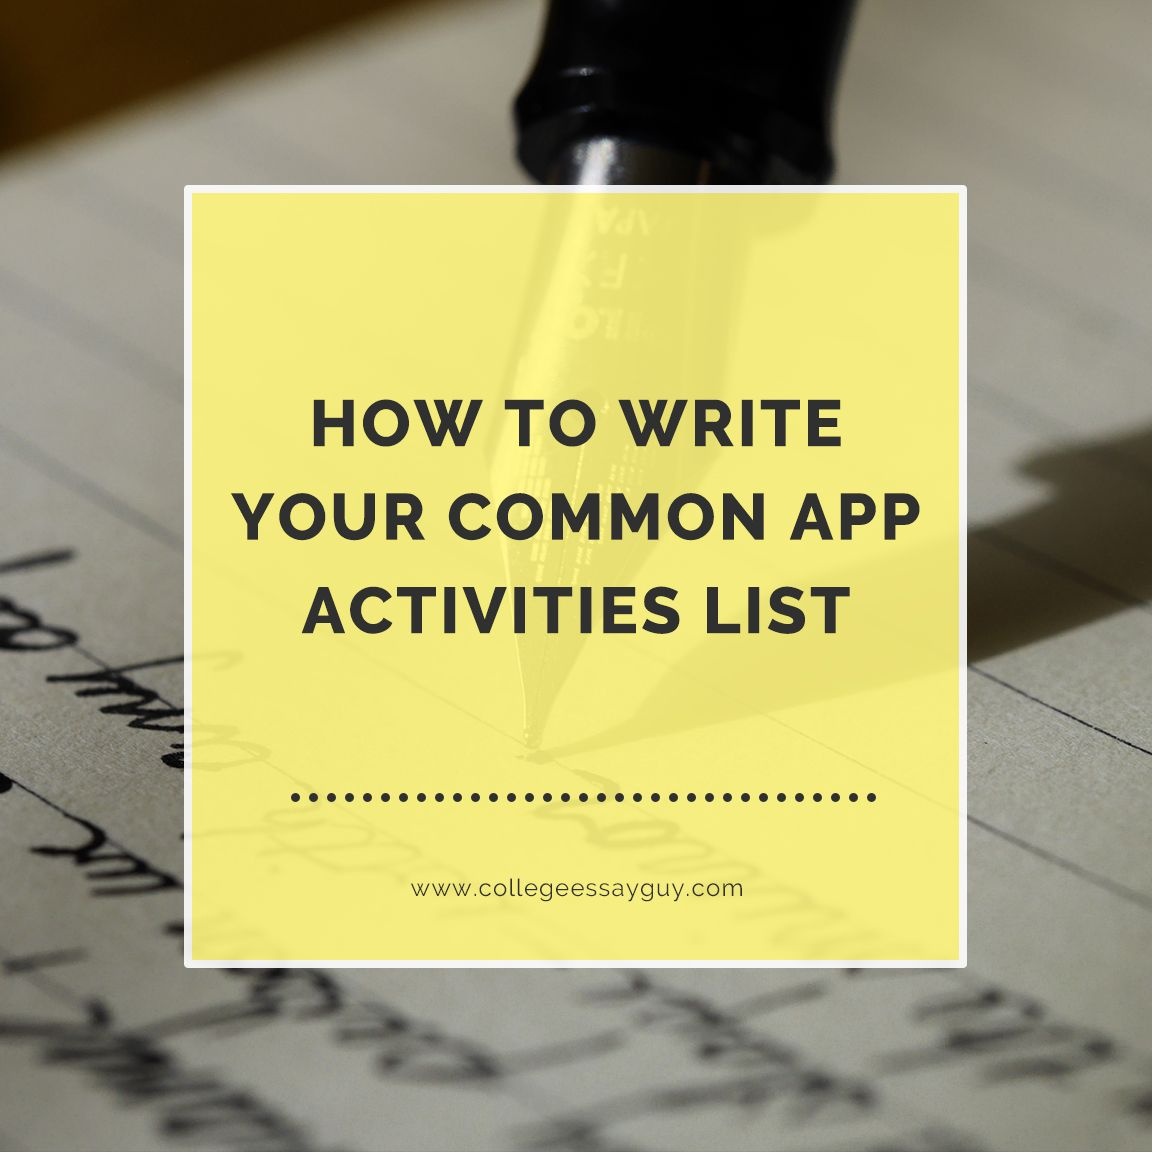 You only get 150 characters: how do you make the most of them? Get the most out of the limited word count of the Activities List by following my guide for translating the hundreds of hours you've spent on projects and activities into your Common App. goo.gl/oQy7qq